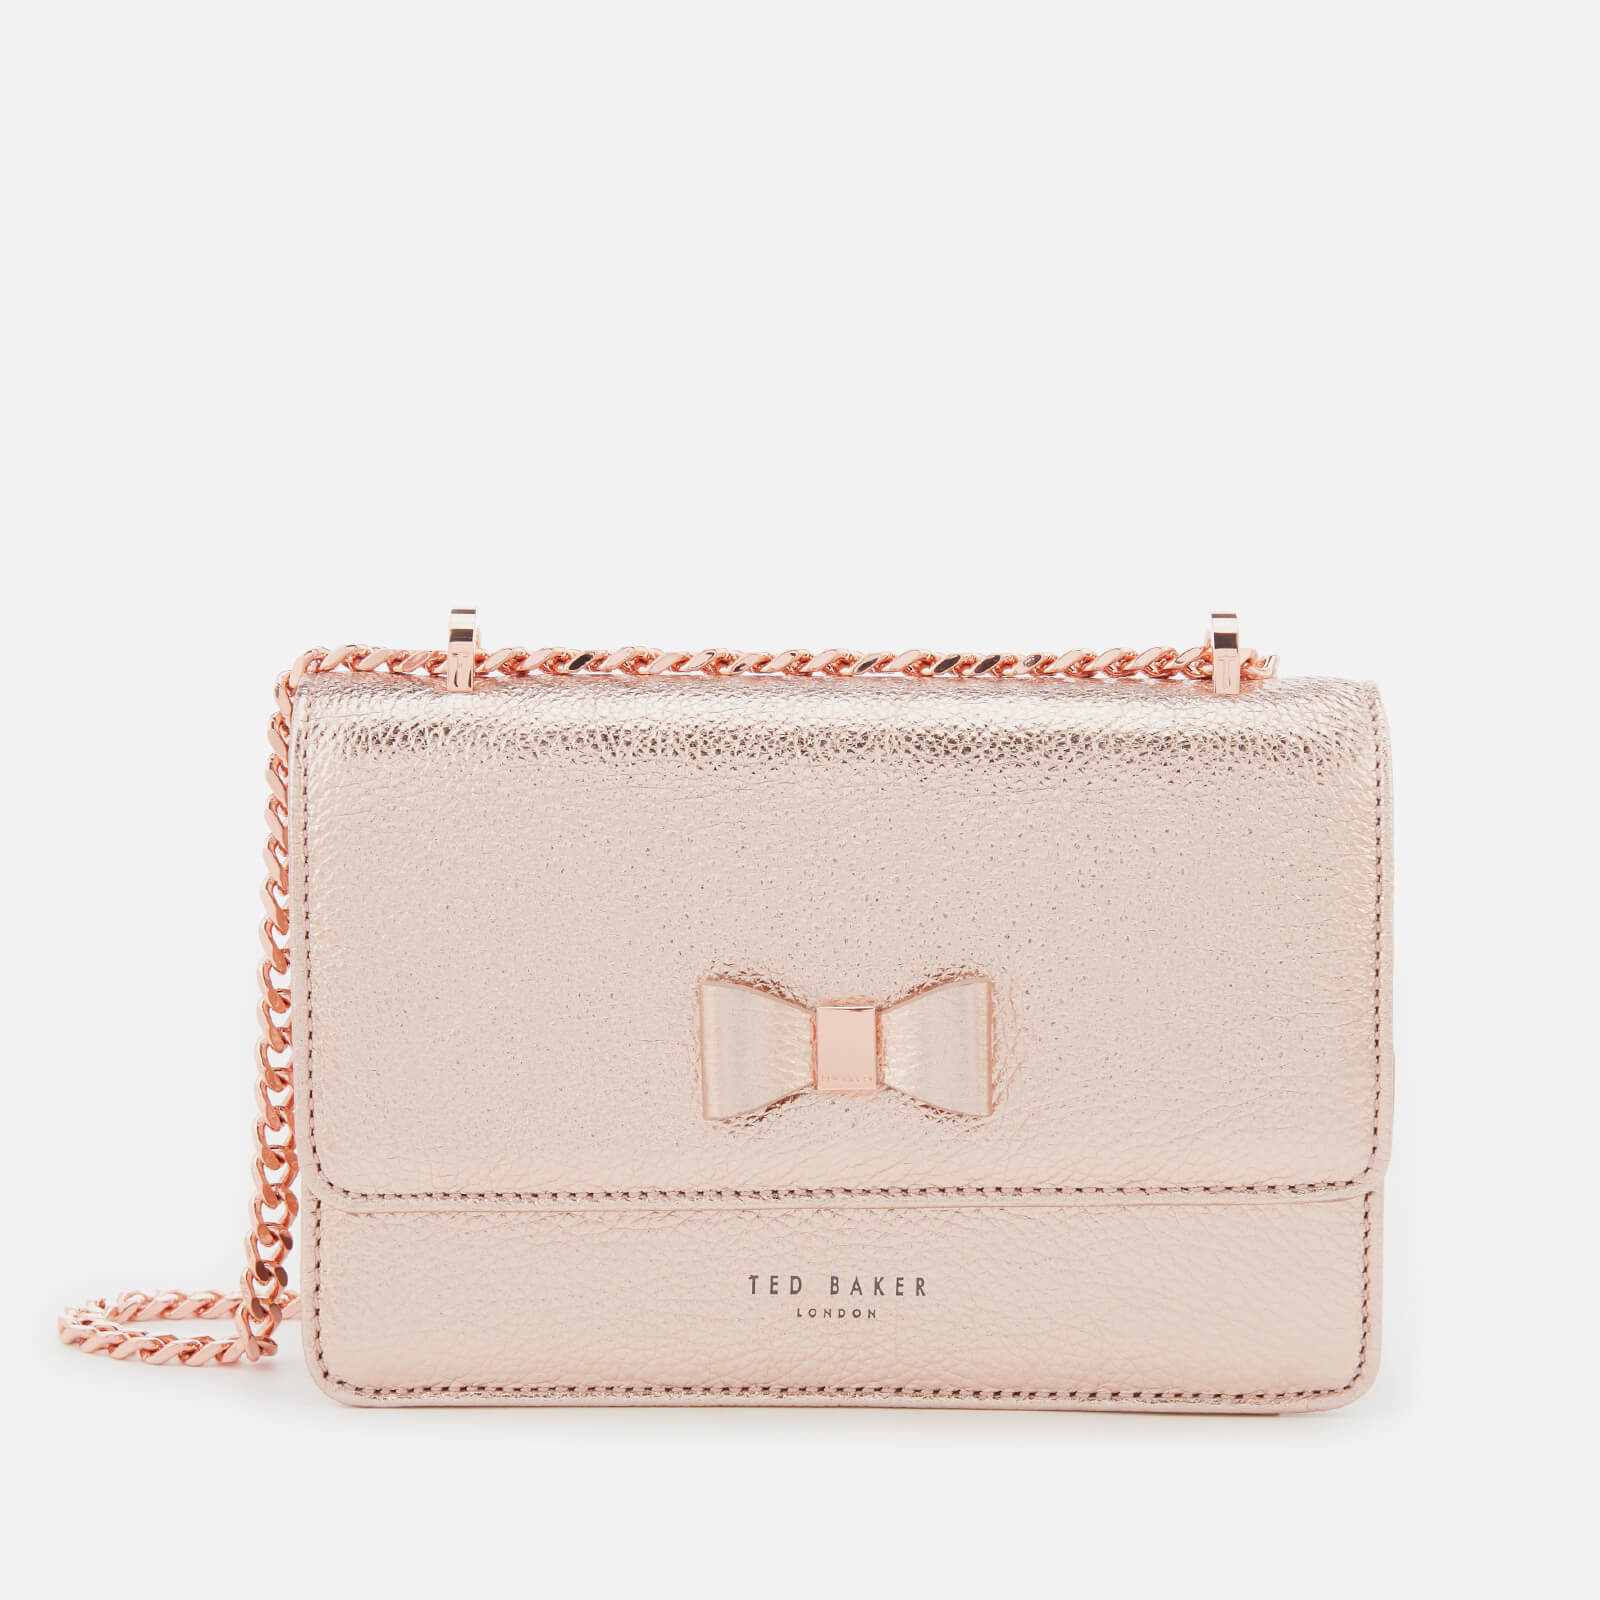 2ee69d686 Ted Baker Women s Drayaa Bow Detail Micro Metallic Cross Body Bag - Rosegold  Womens Accessories